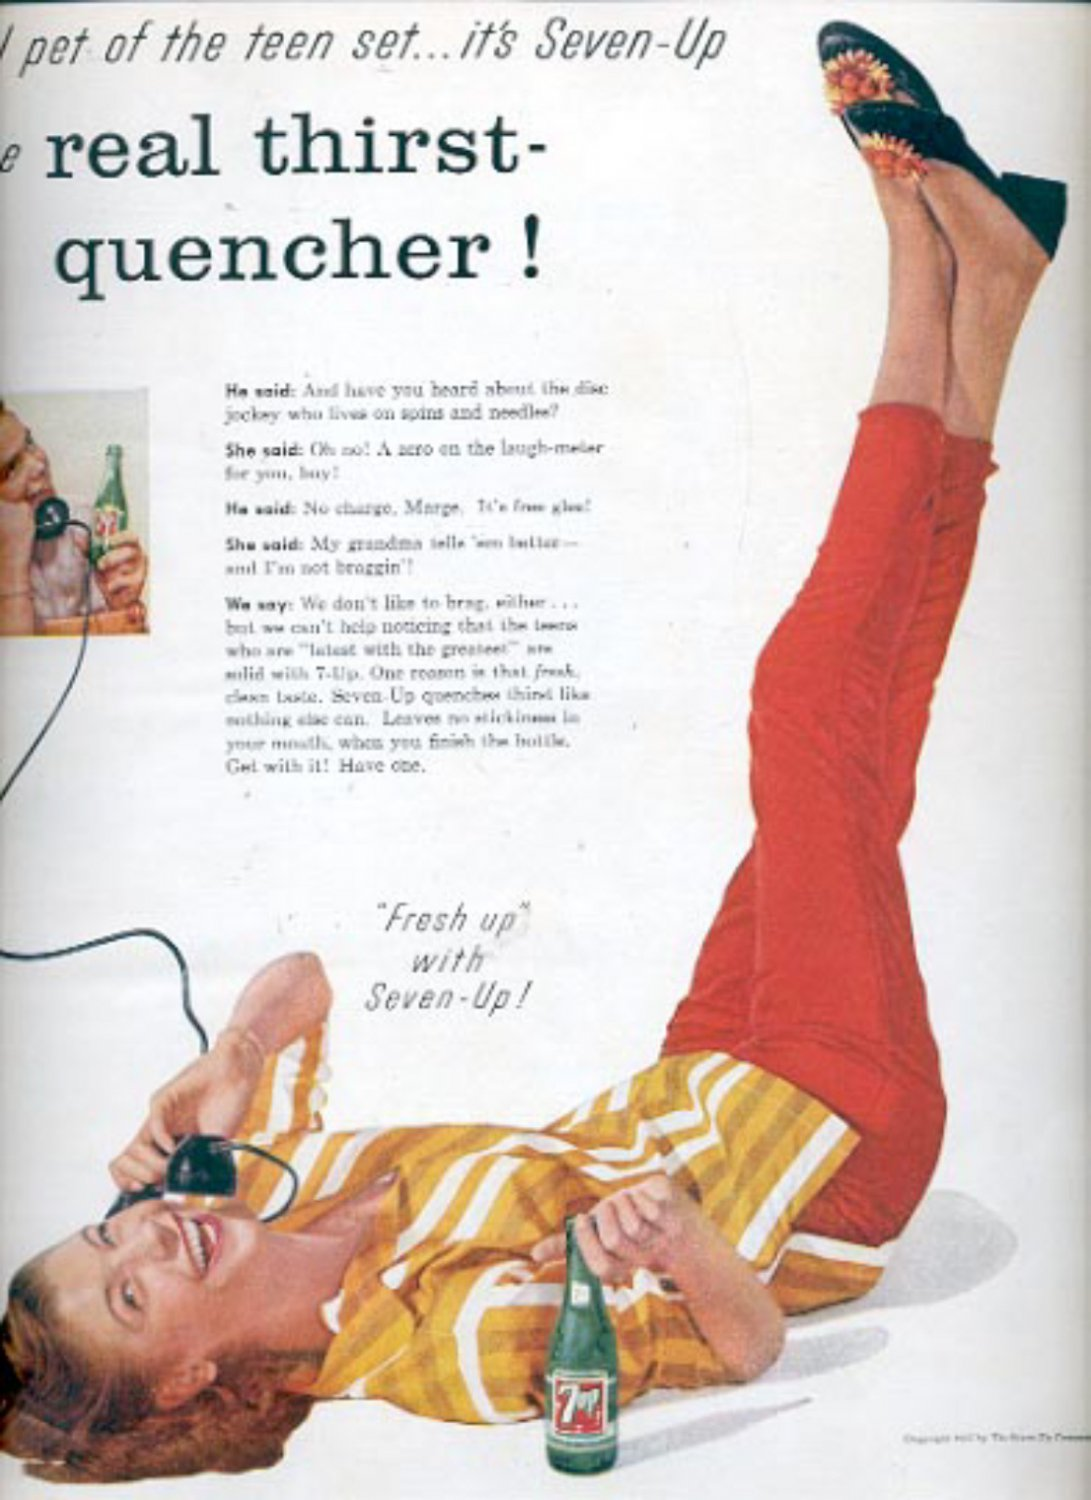 1957 Nothing does it like Seven-UP!  ad (# 4977)